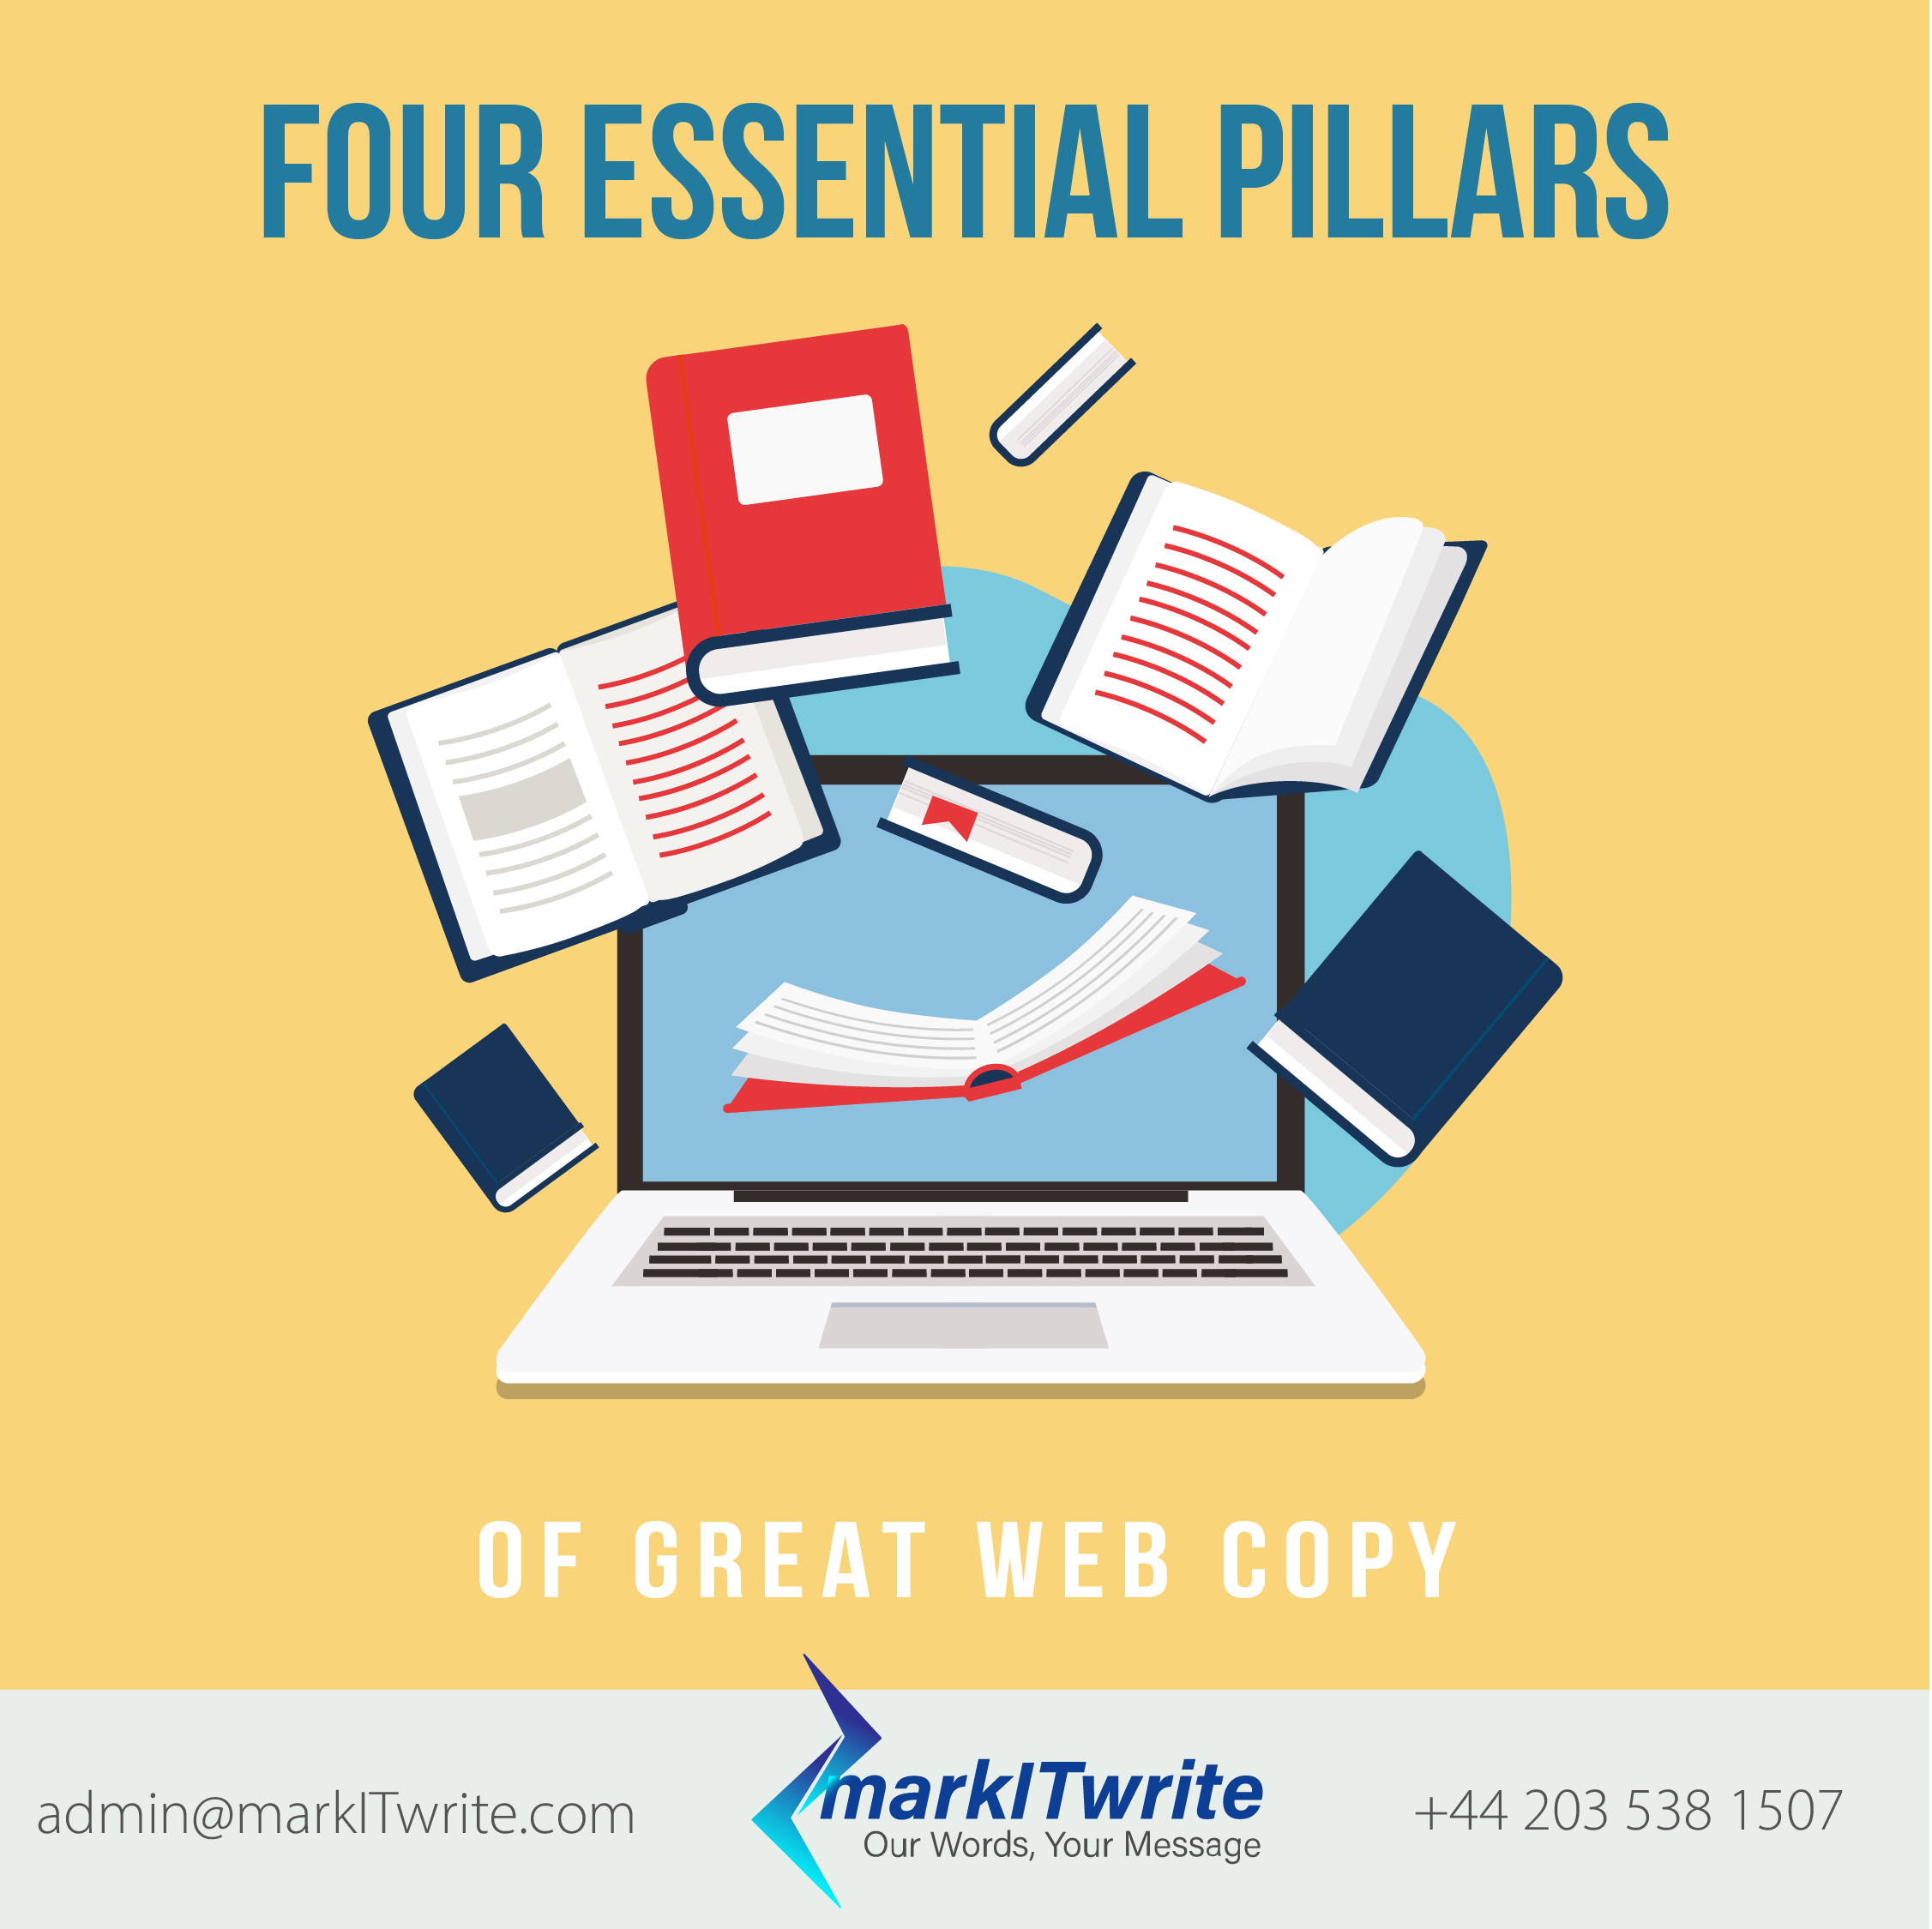 Four Essential Pillars of Great Web Copy